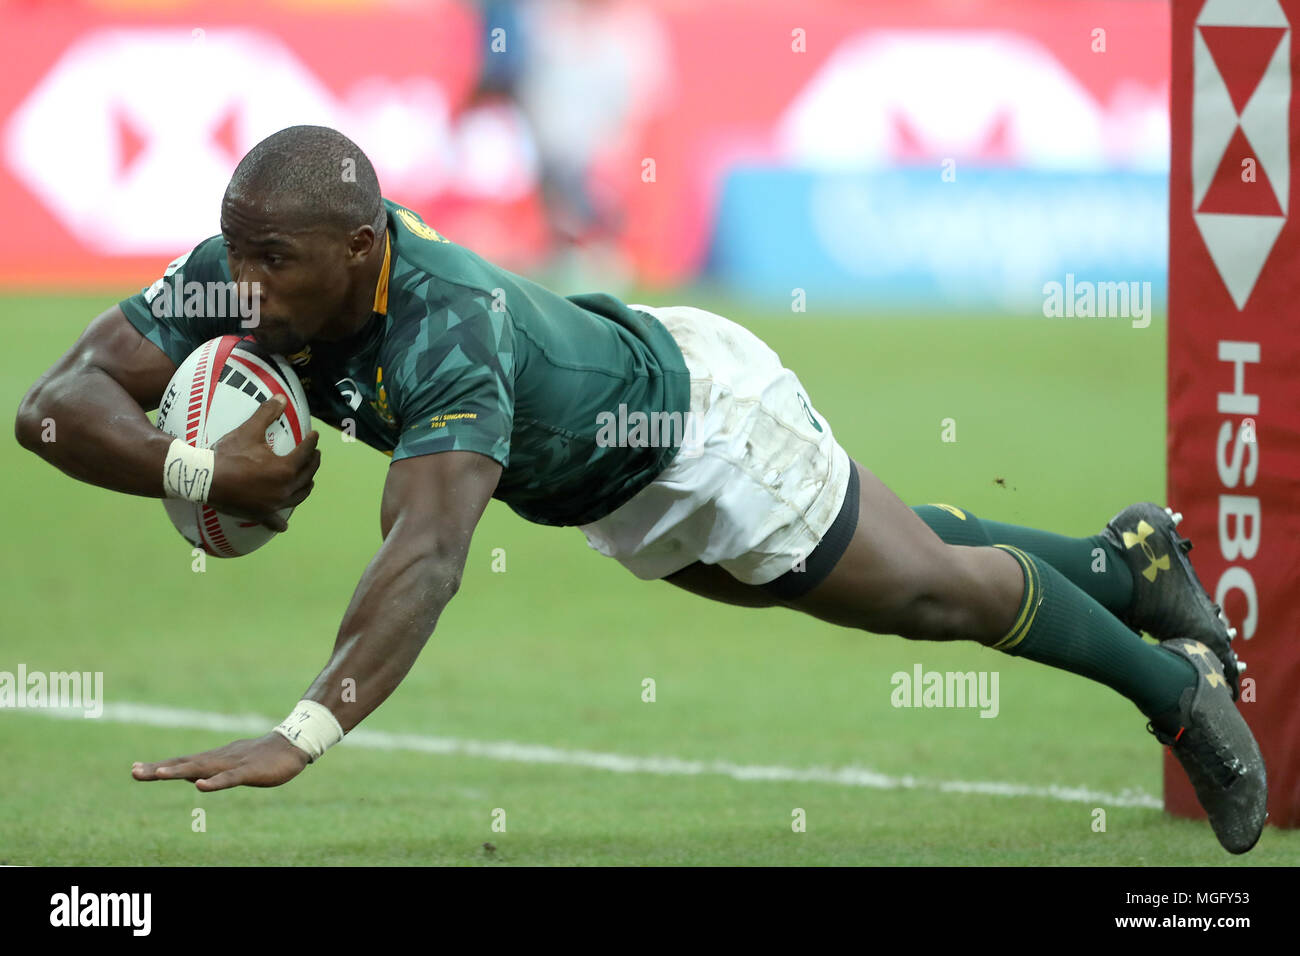 Singapore  29th Apr, 2018  Siviwe Soyizwapi of South Africa scores a